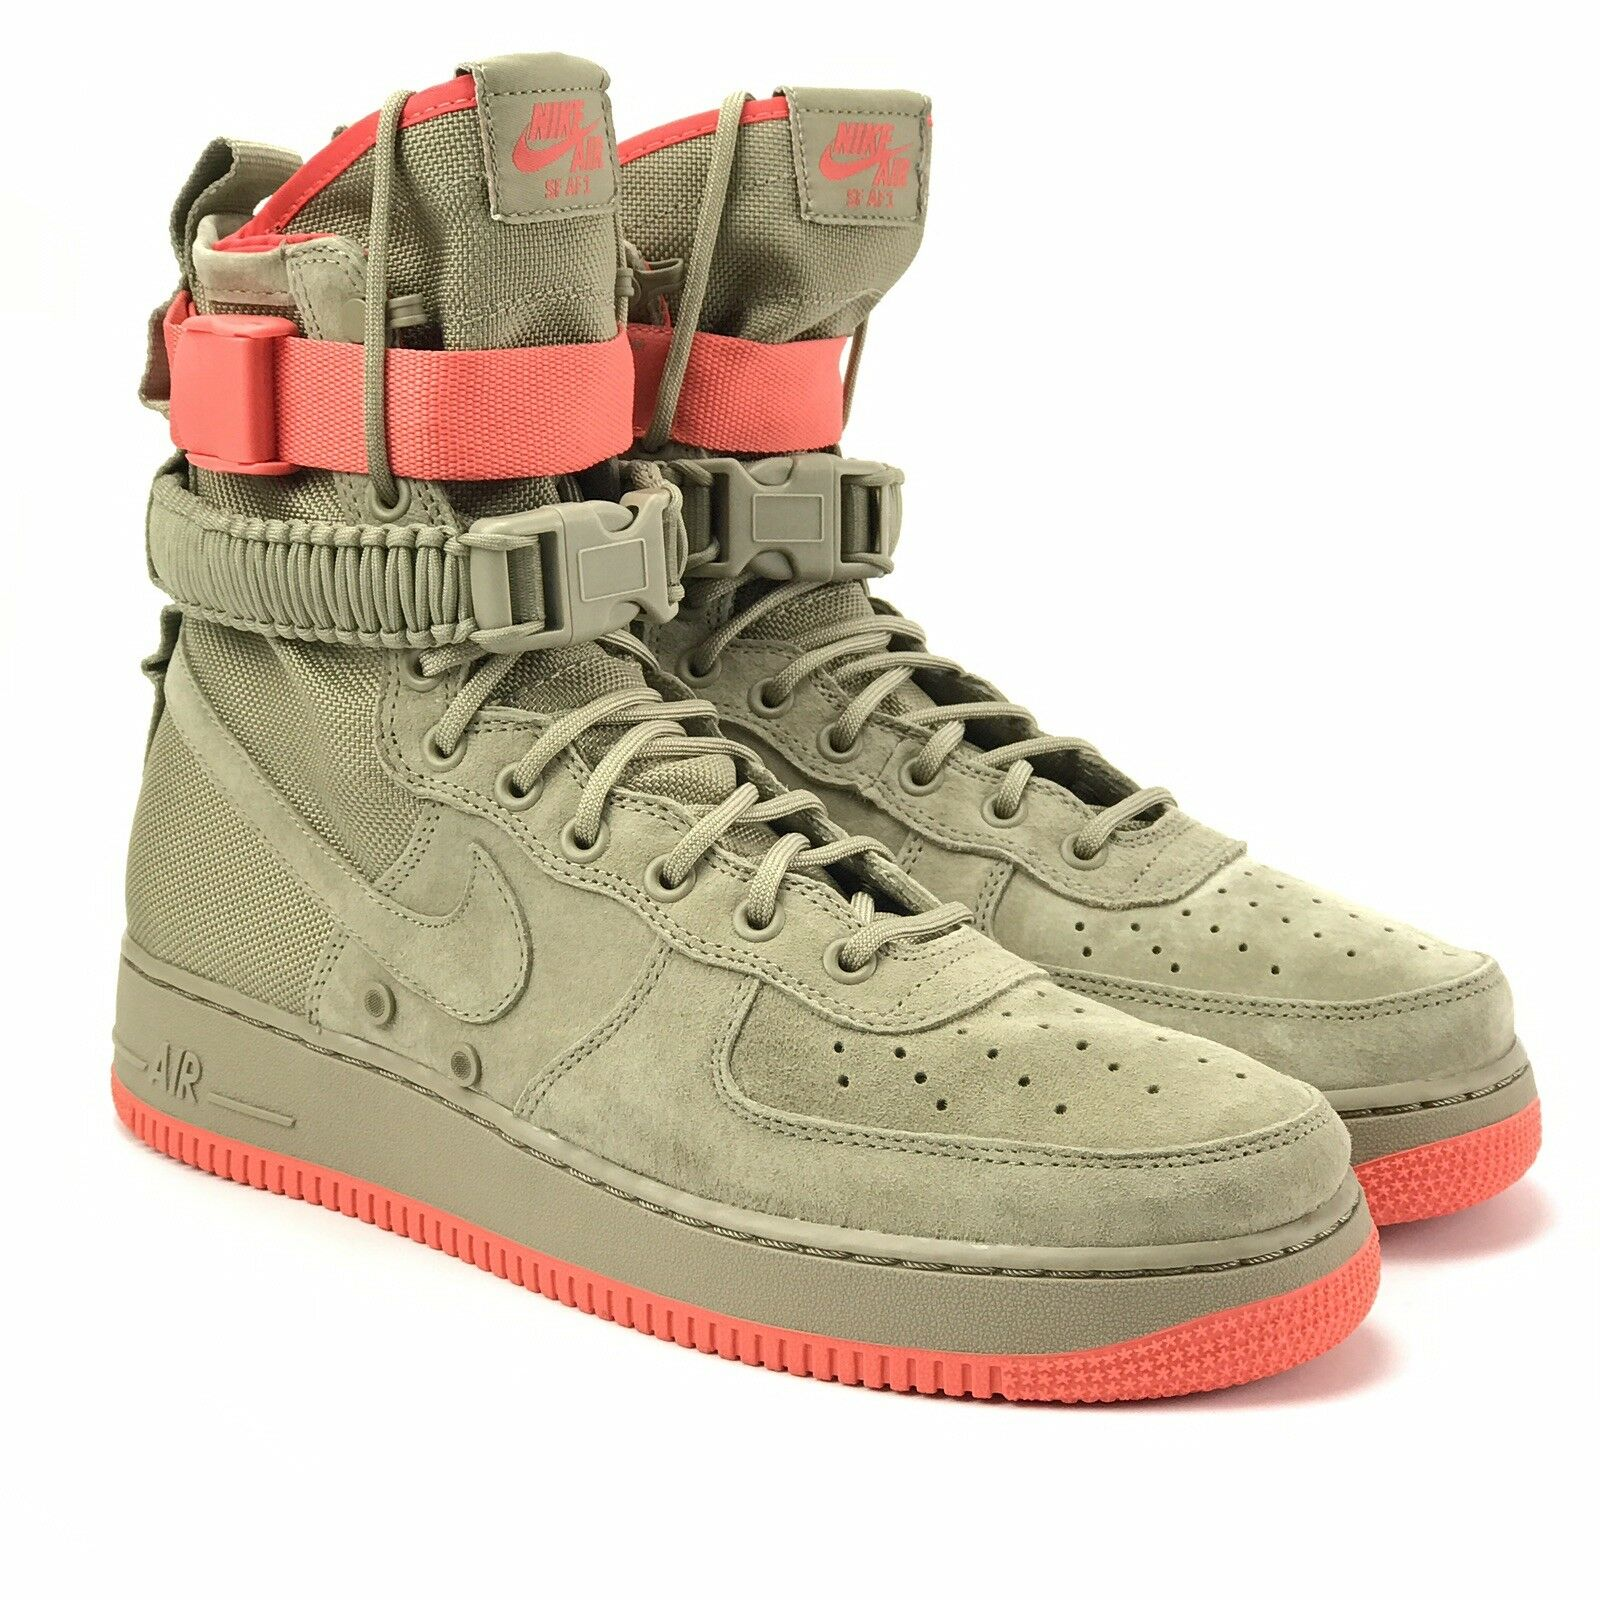 Nike Air Mens SF AF1 Special Forces Air Force One Khaki Rush Coral Size 9